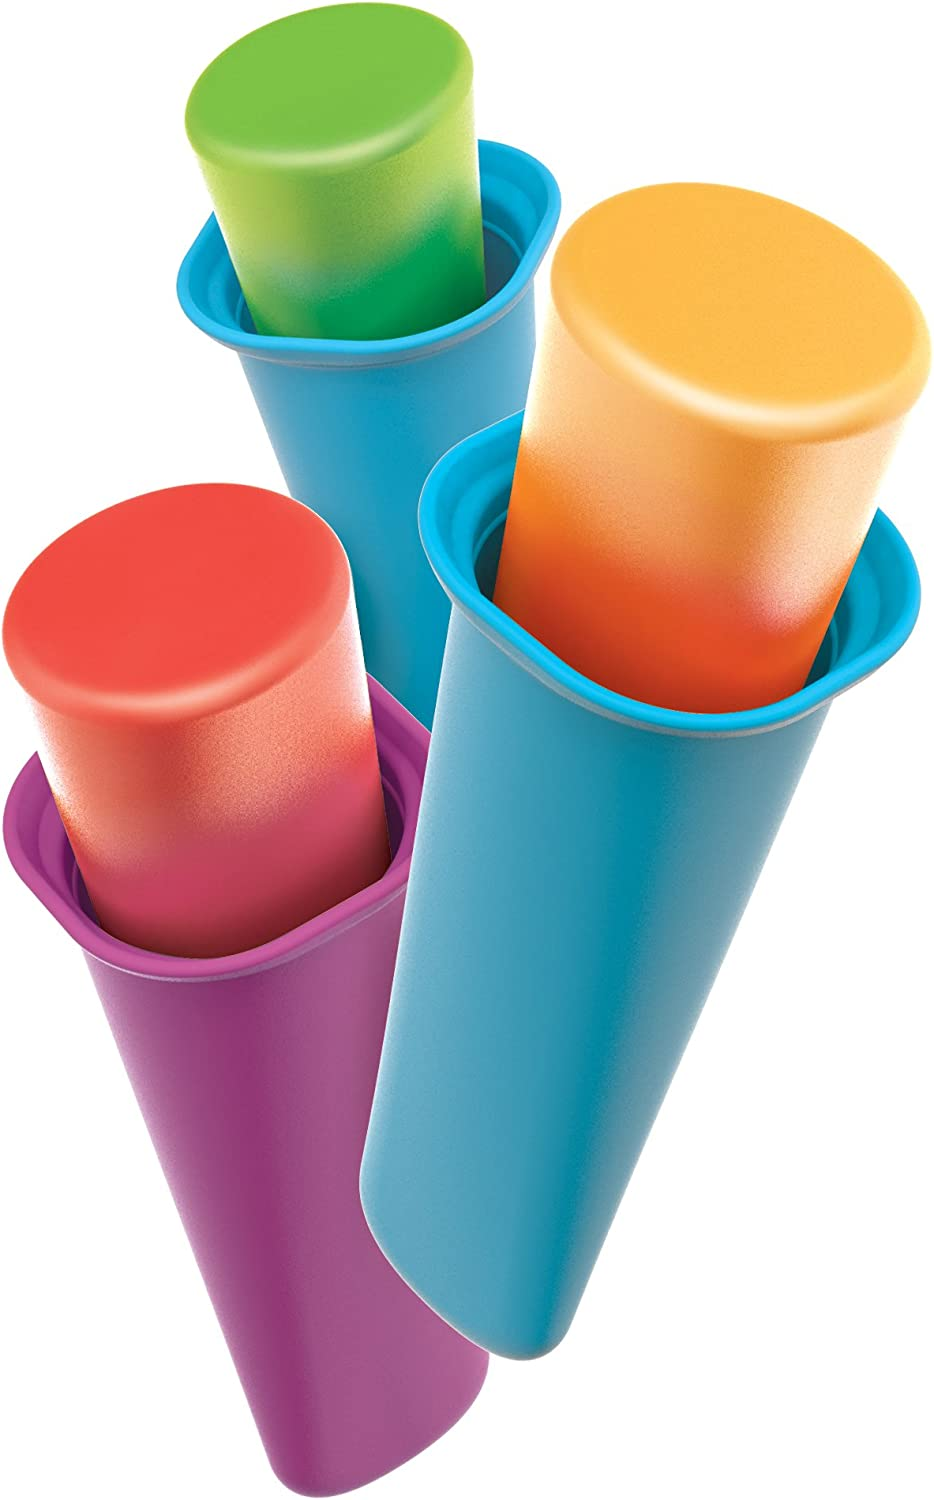 Zoku Summer Pops, 6 Squeezable Silicone Molds with Reusable Spill-resistant Lids and Tray, BPA-free